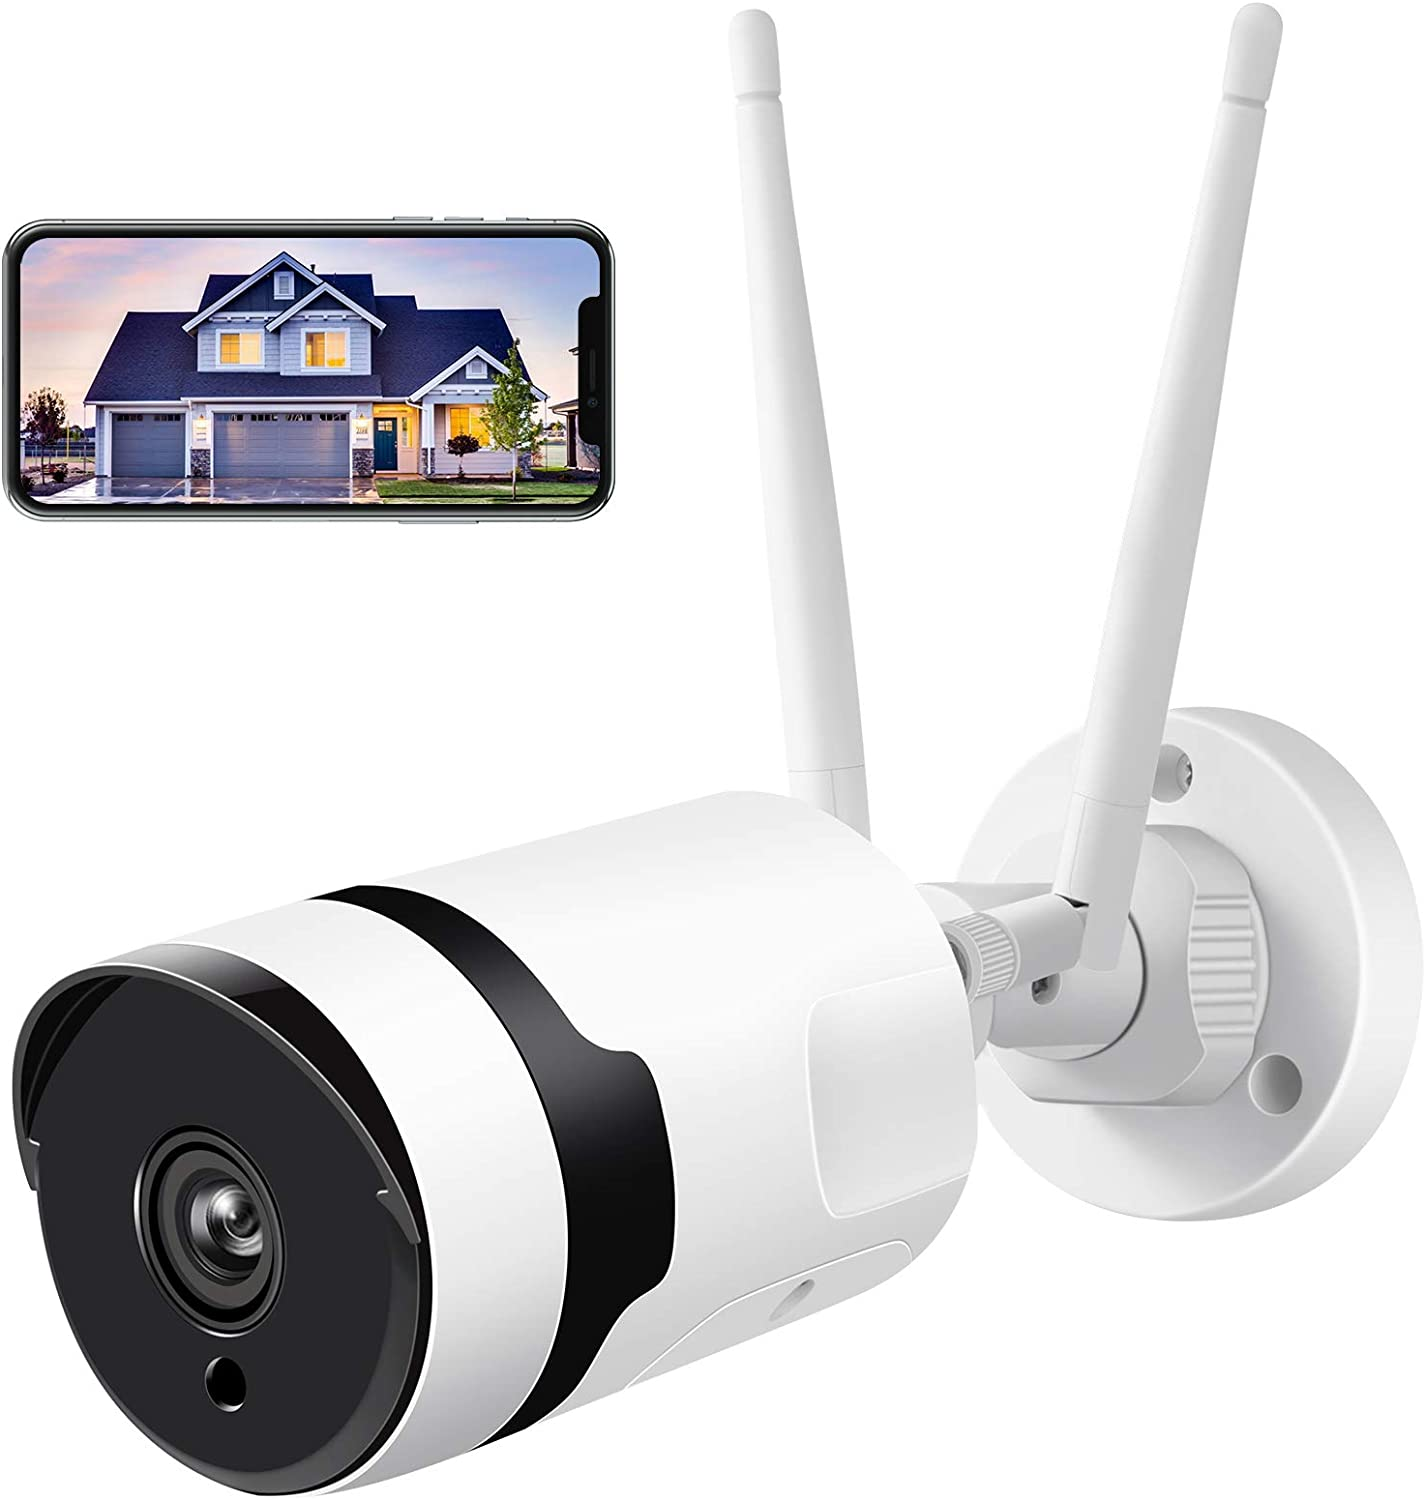 Security Camera Outdoor, HJSHI 1080p Wireless WiFi Surveillance Camera with Dual WiFi Antenna, Two-Way Audio, Night Vision, Motion Detection, Remote Access, Compatible with iOS/Android